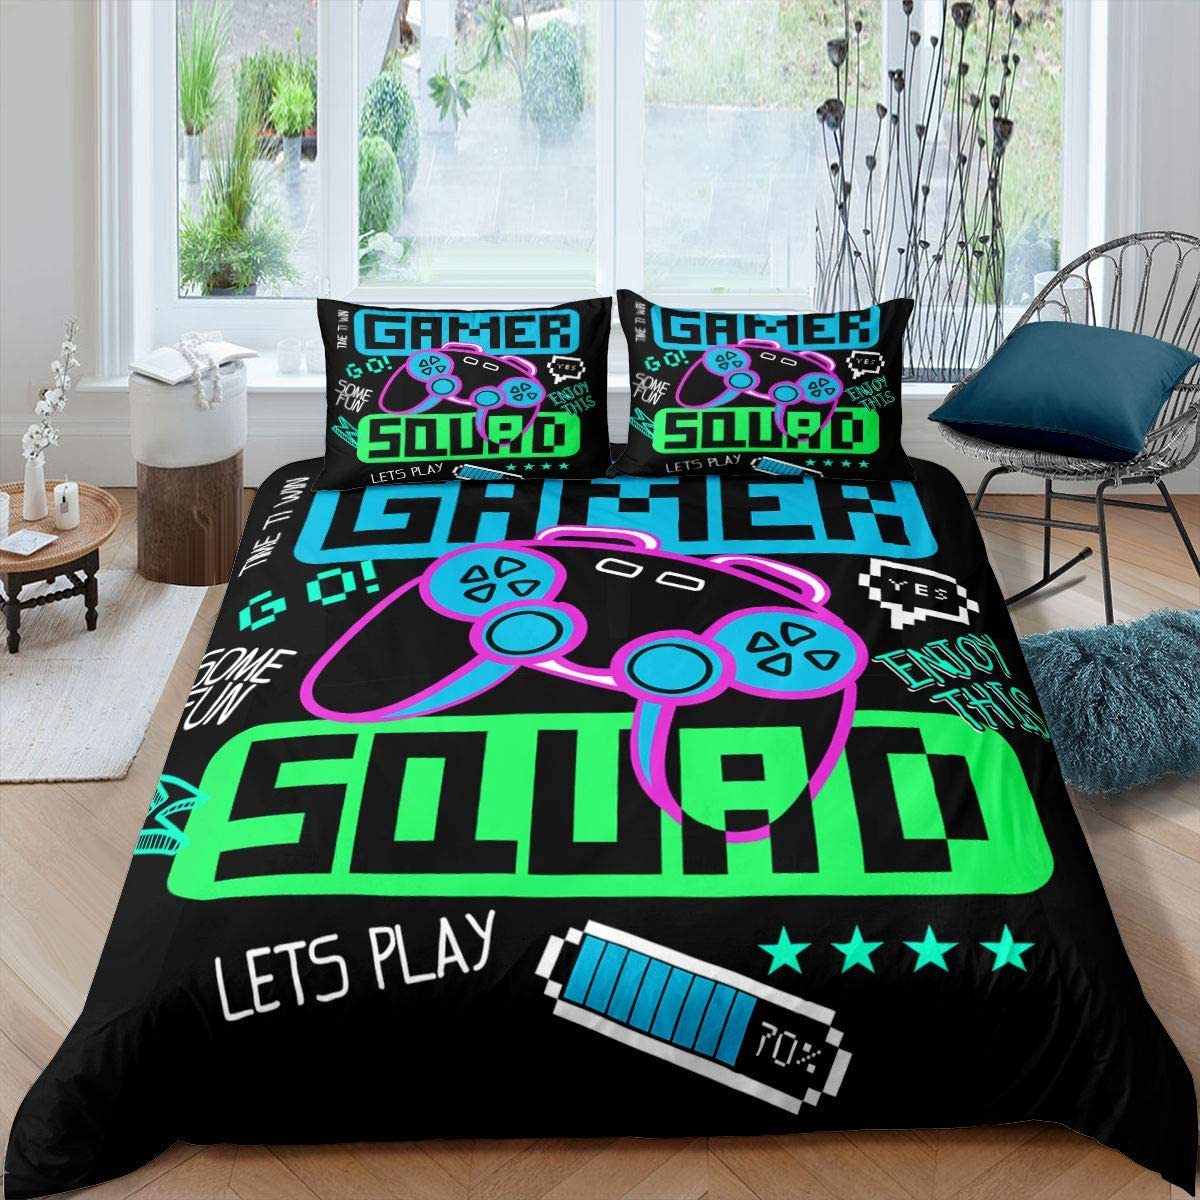 Gamepad Comforter Cover Set Videogame Controller Printed Bedding Set Girls Teen Player Gaming Duvet Cover for Teen Boys Bedroom Decor Bedspread with Zipper Ties Soft Microfiber Quilt Set, Twin Size